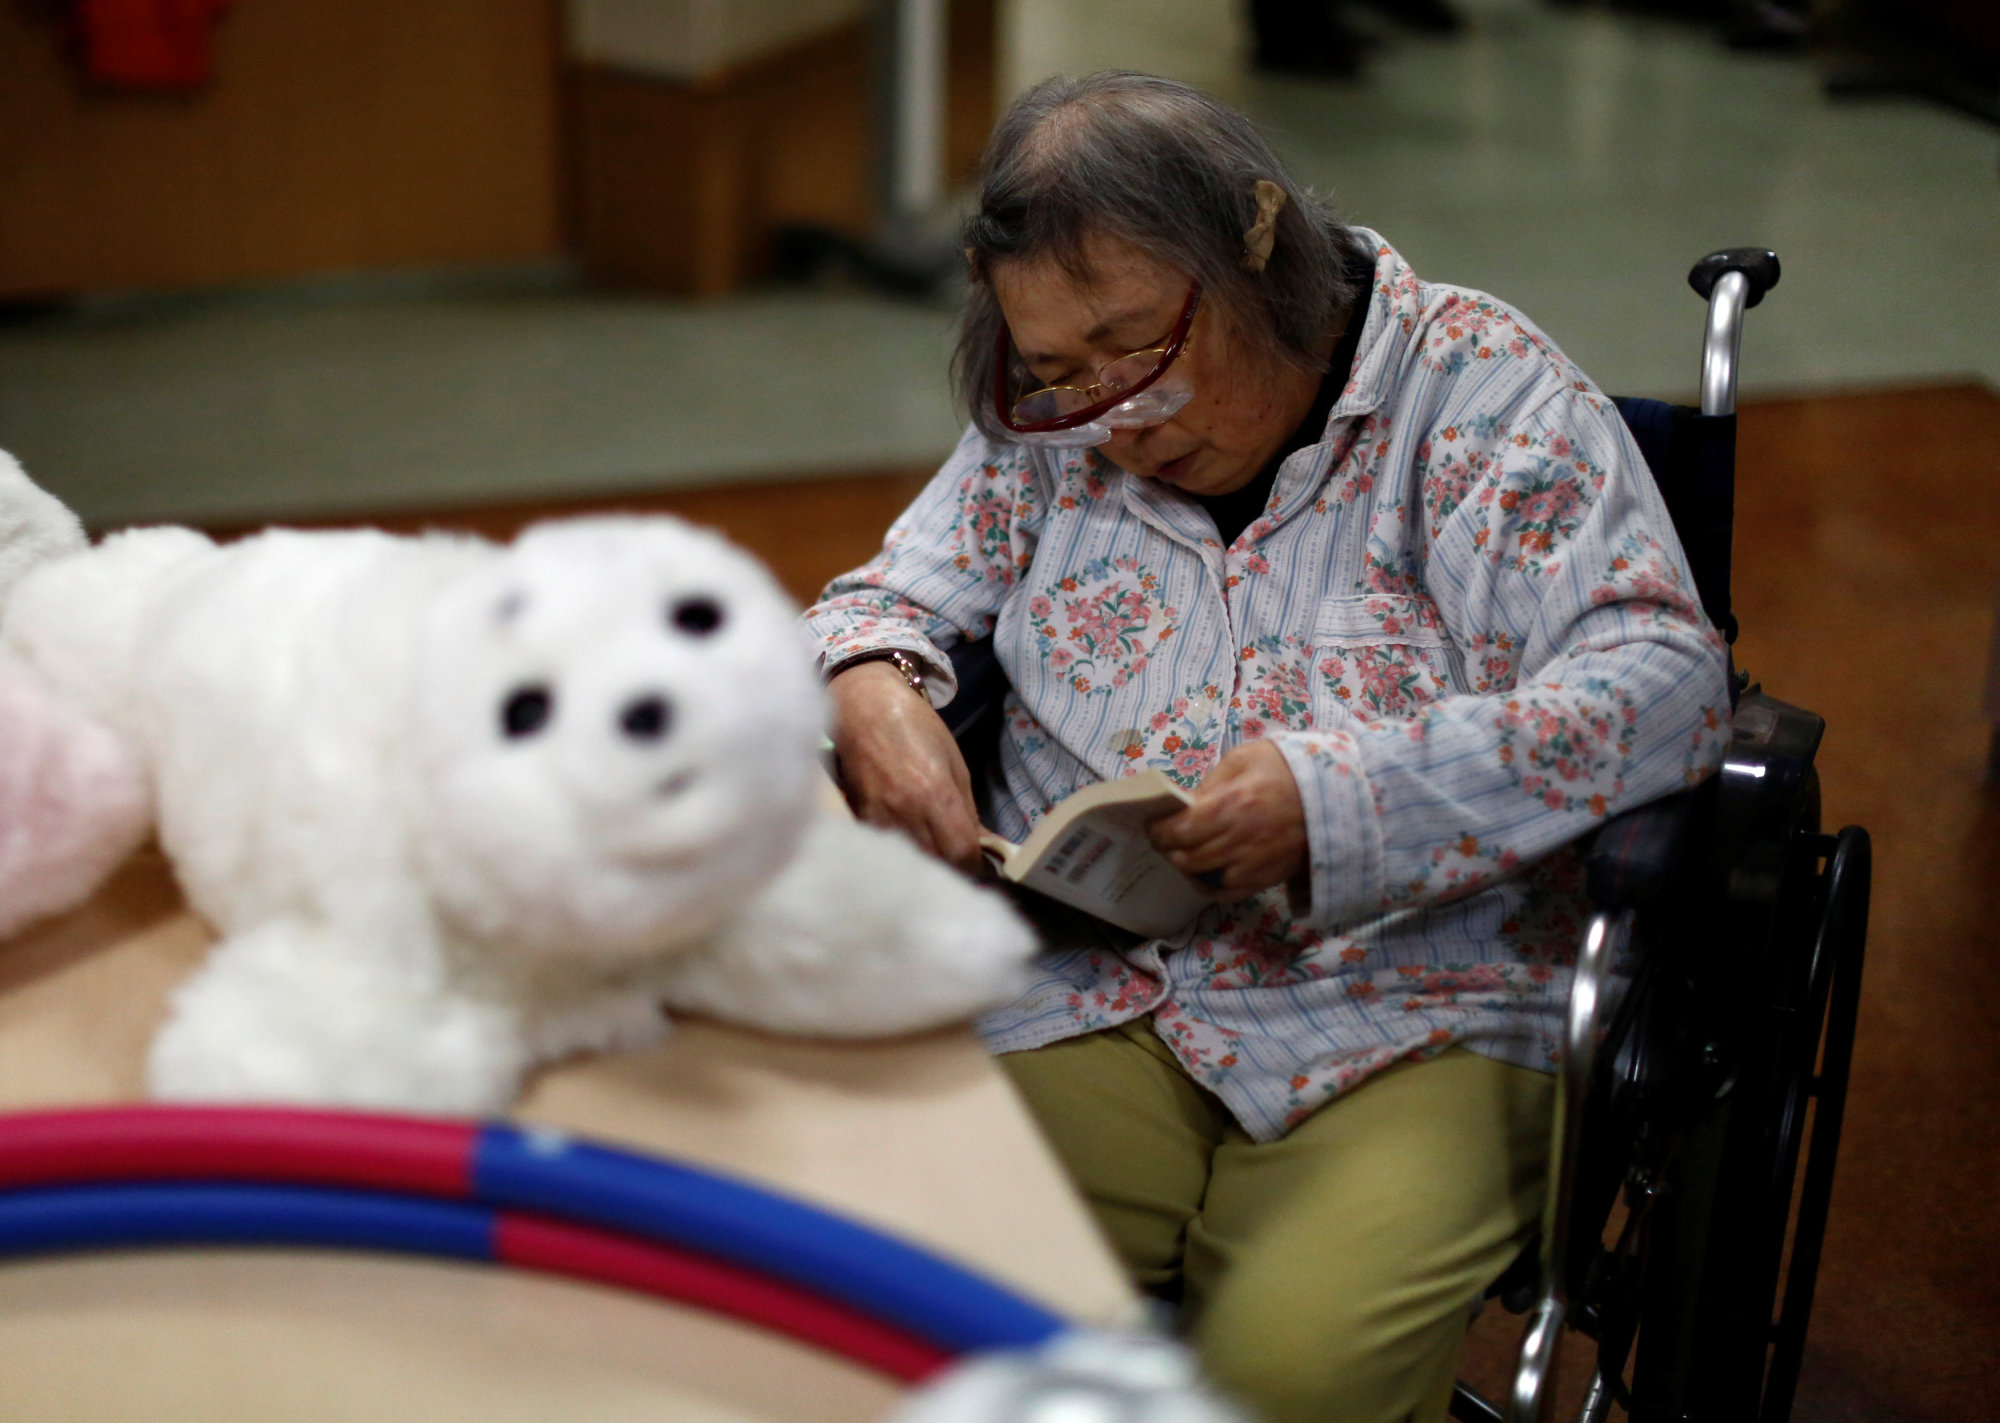 A resident reads a book during a session with Paro, a robotic seal, at the Shintomi nursing home in Tokyo.